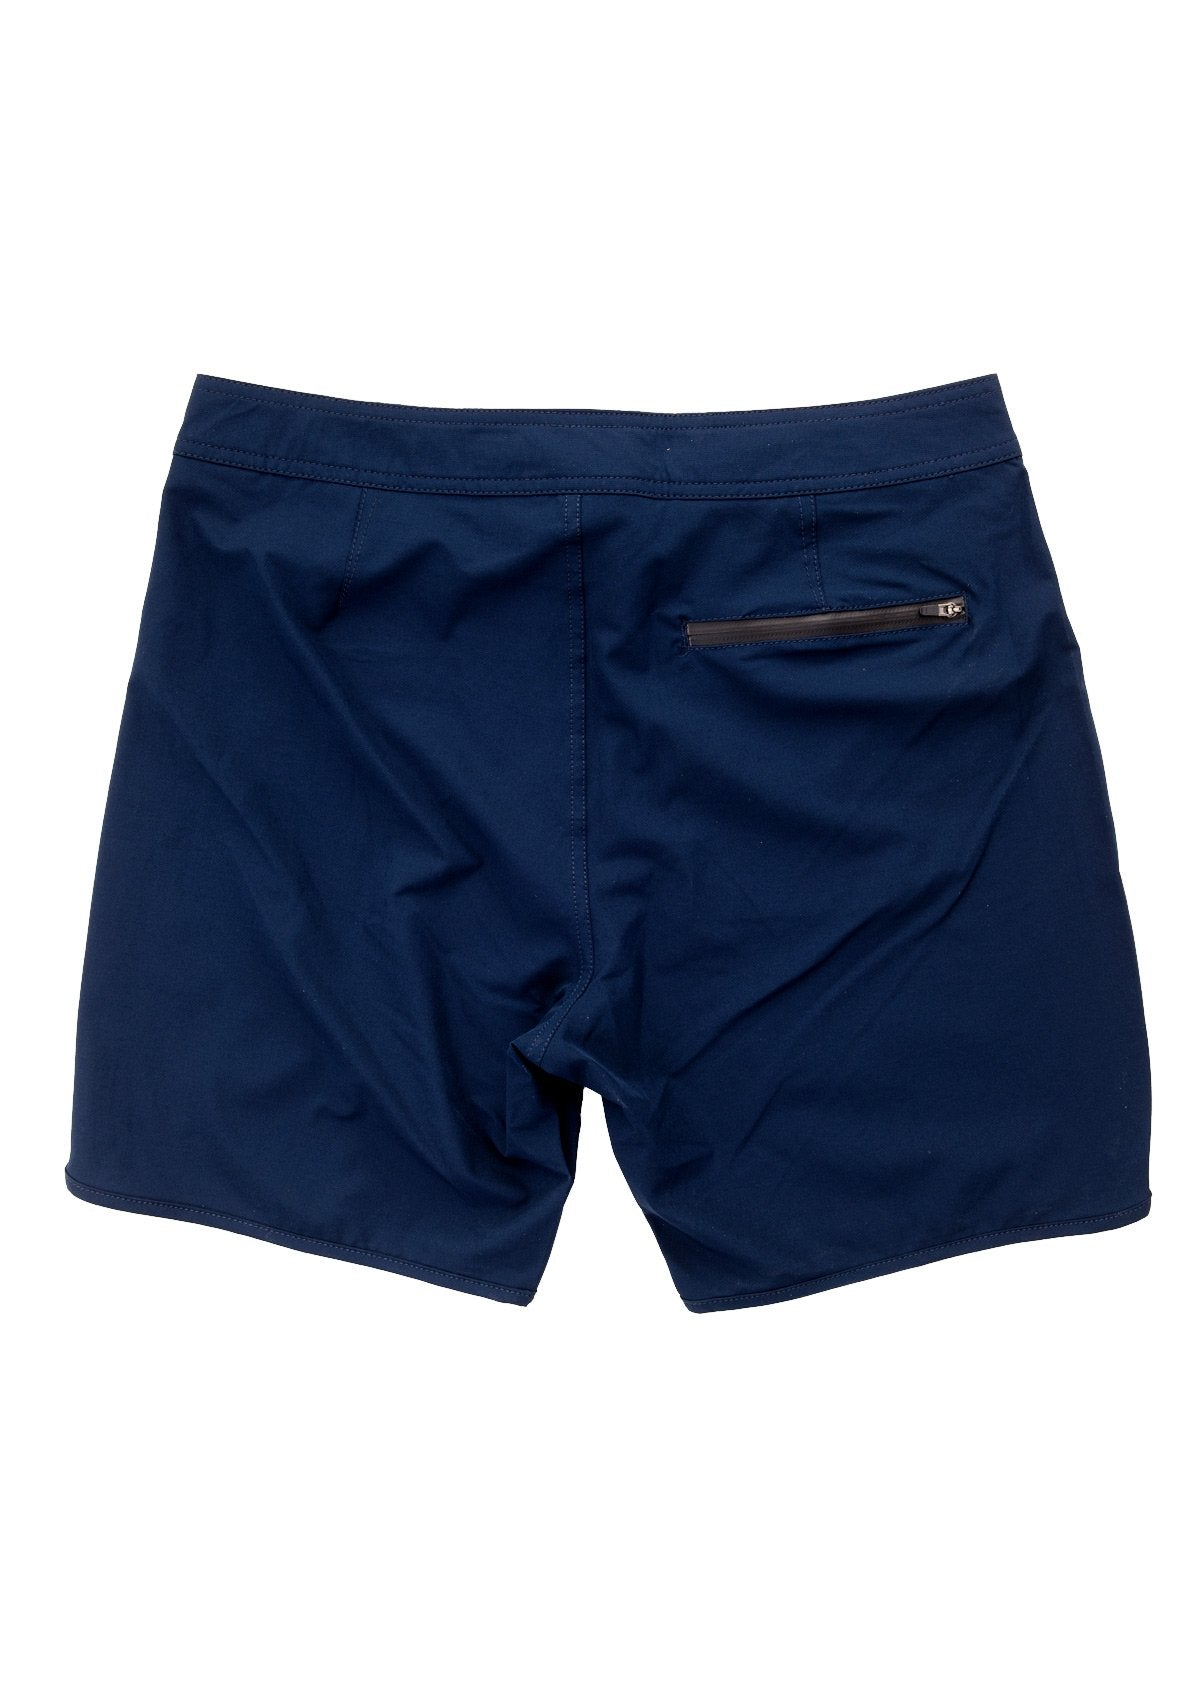 Navy-Scallop Boardshort